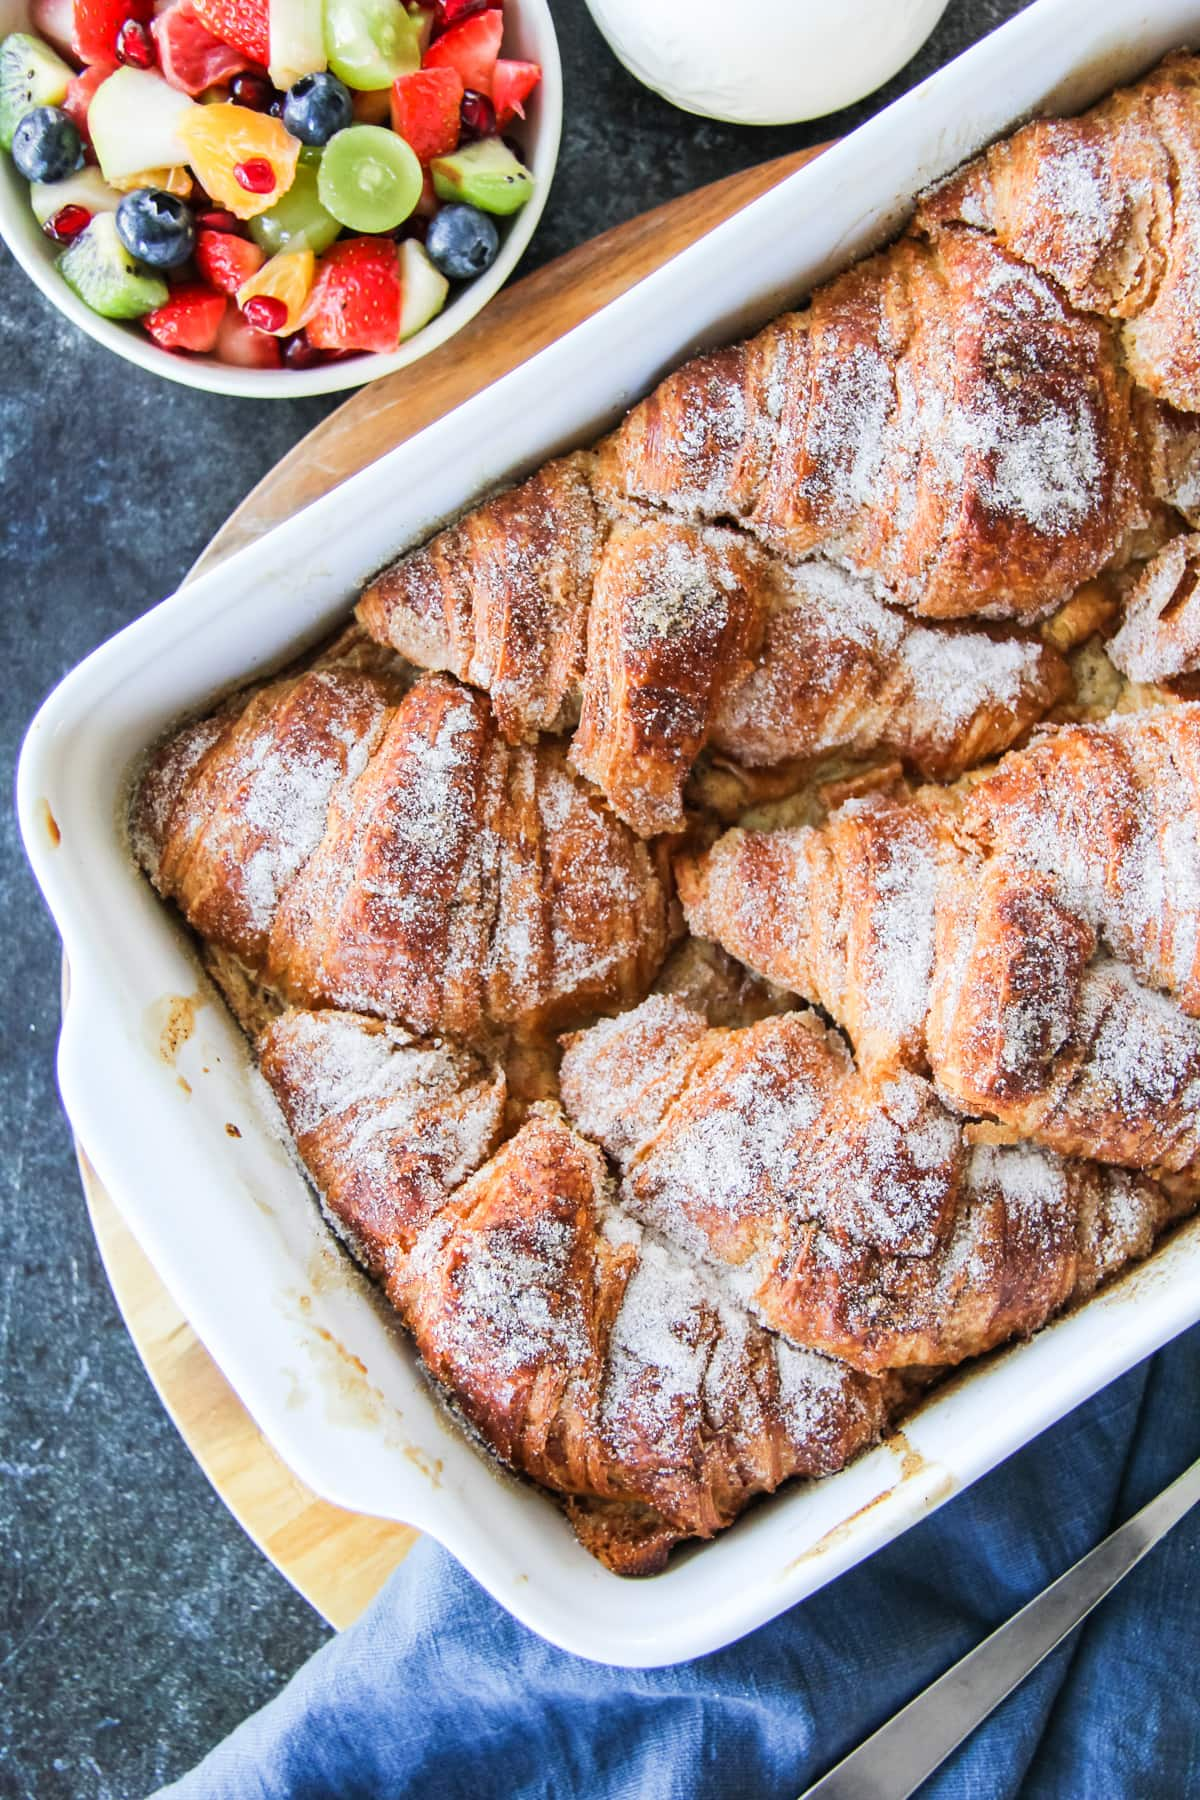 a top down view of a Croissant French Toast Bake and fruit salad